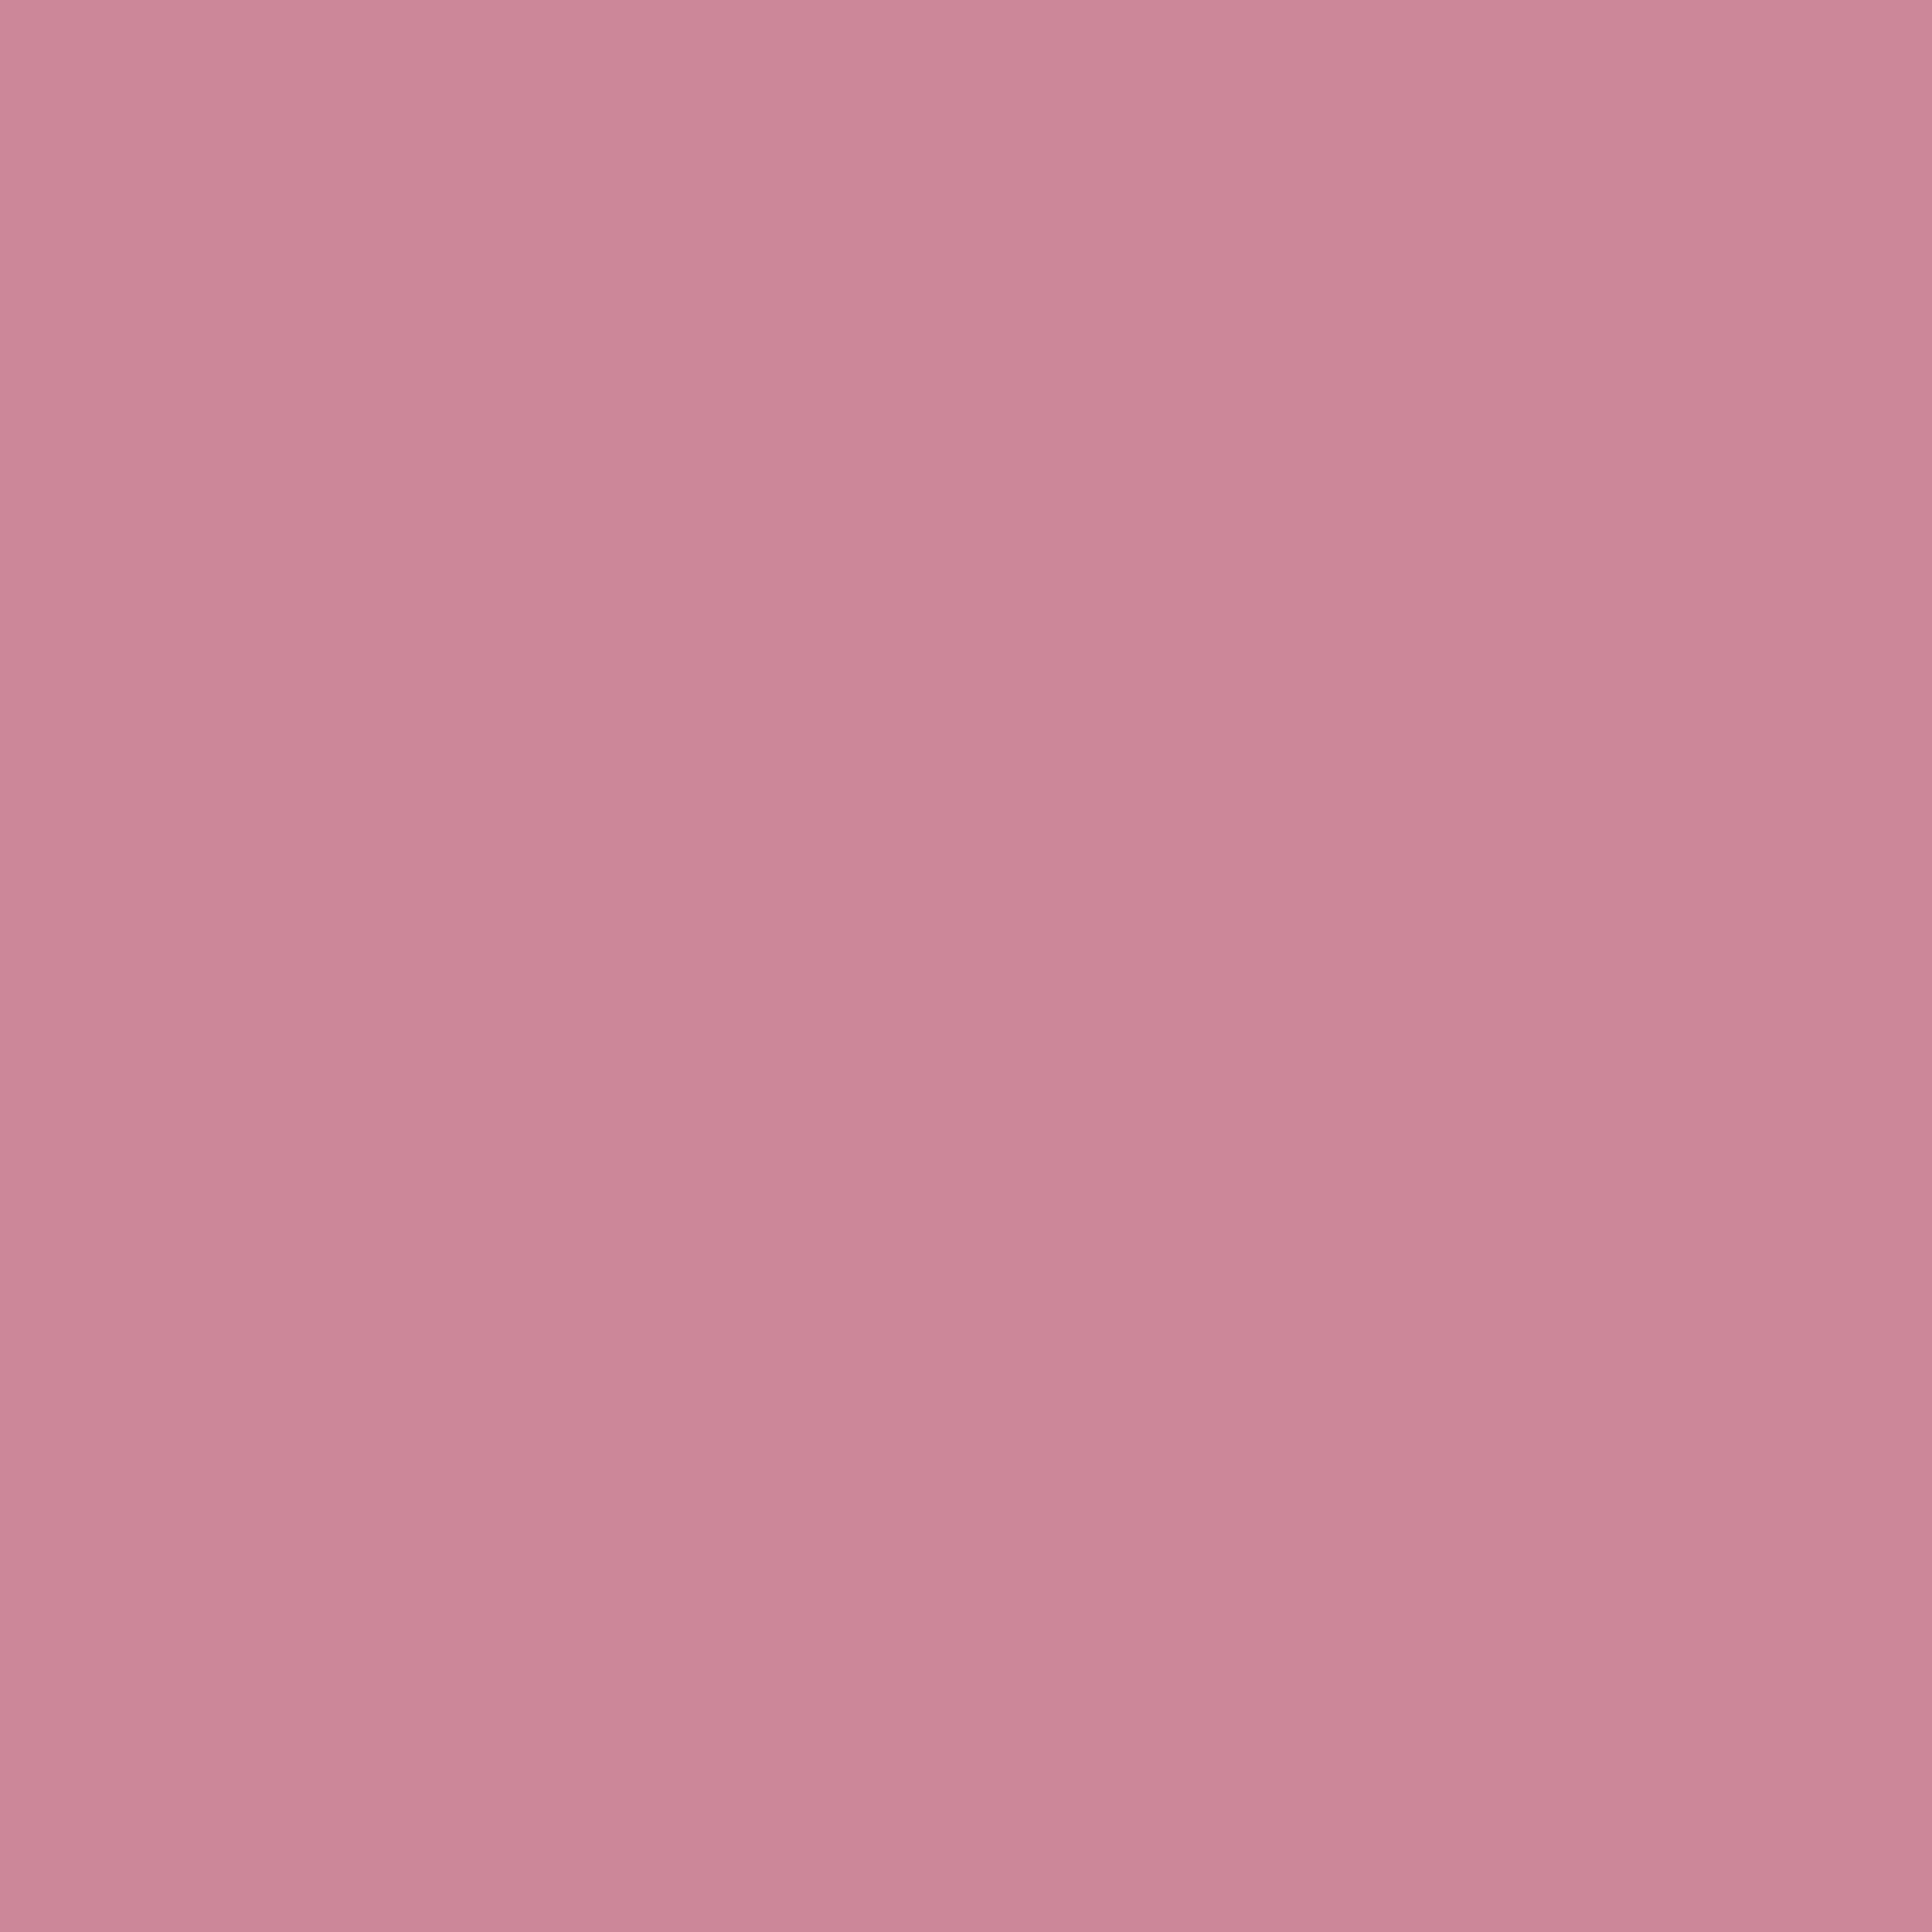 2048x2048 Puce Solid Color Background